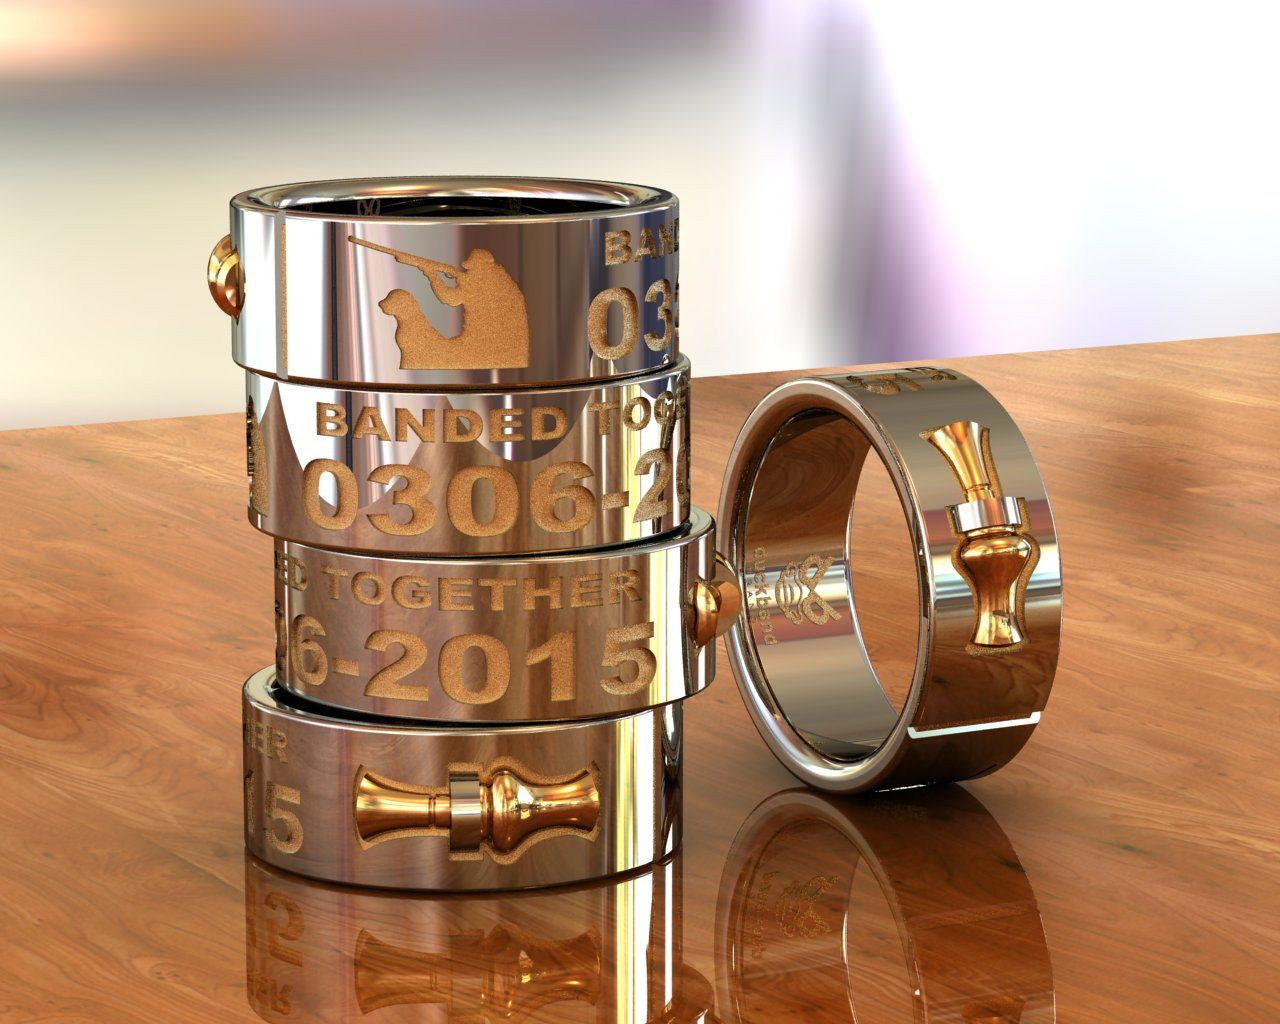 duck band wedding ring DuckBandBrand s custom 14K gold wedding band with 3D duck call Are Gold castings are